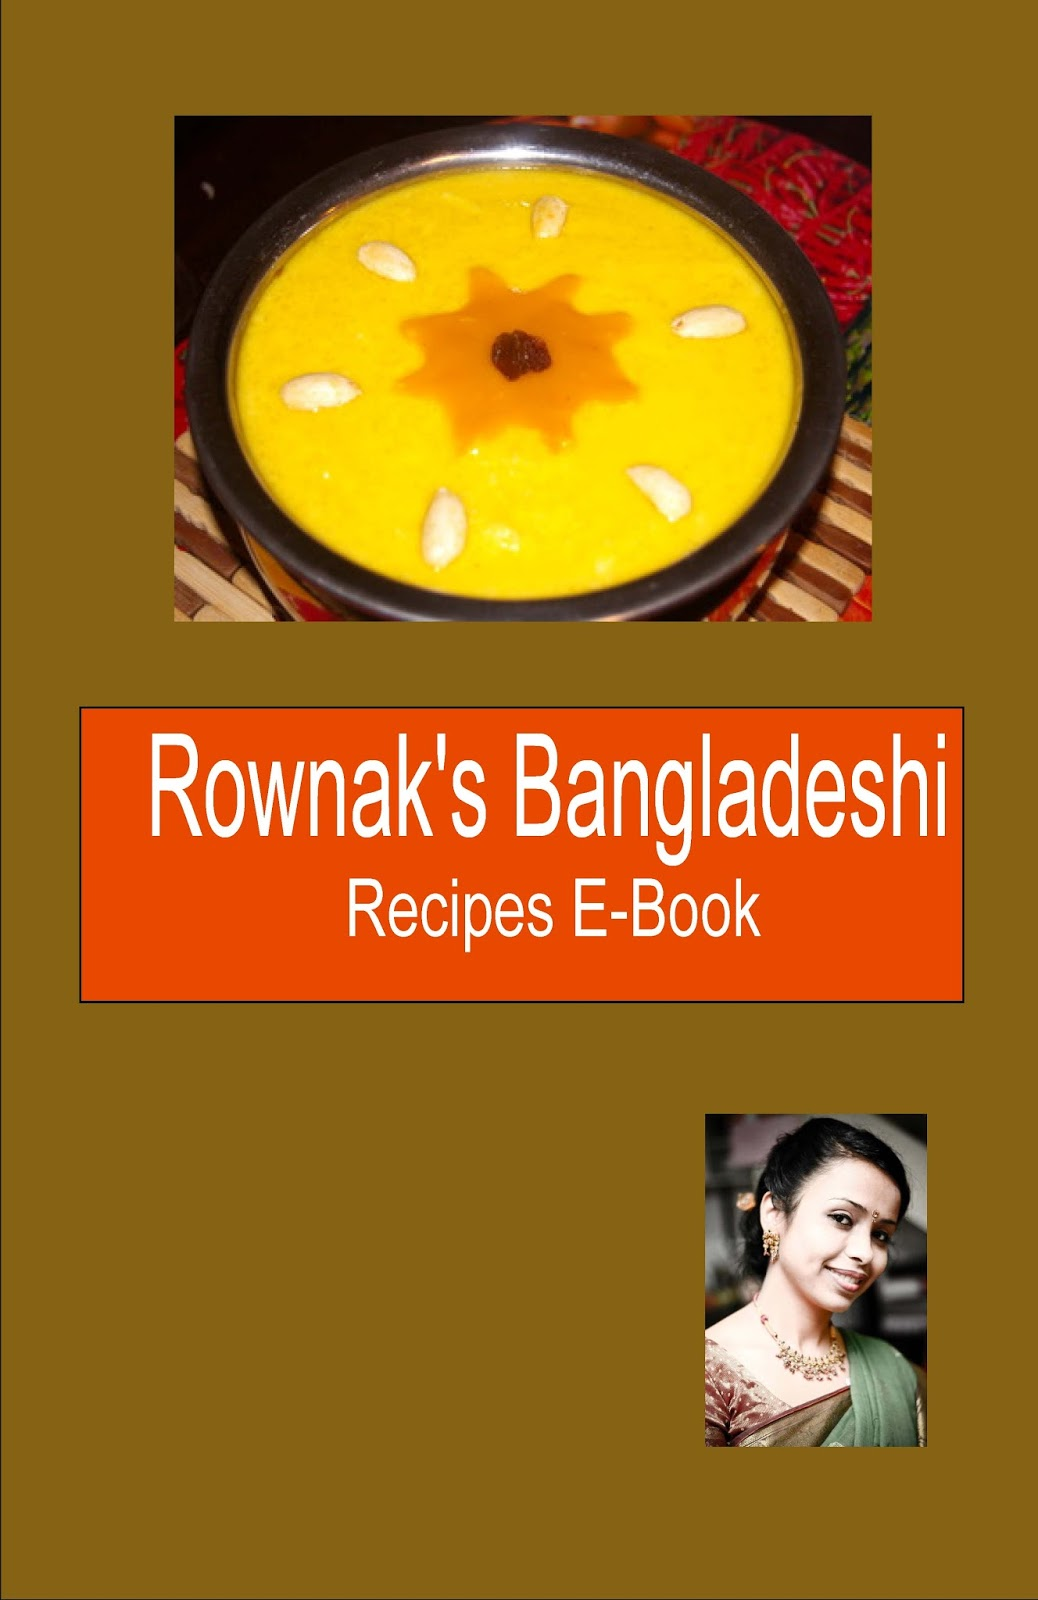 Free book download store bangladeshi food recipes by rownak jahan download book of bangladeshi food recipes by rownak jahan and read book just simple click make your own copy please wait 5 sec after clicking download forumfinder Image collections